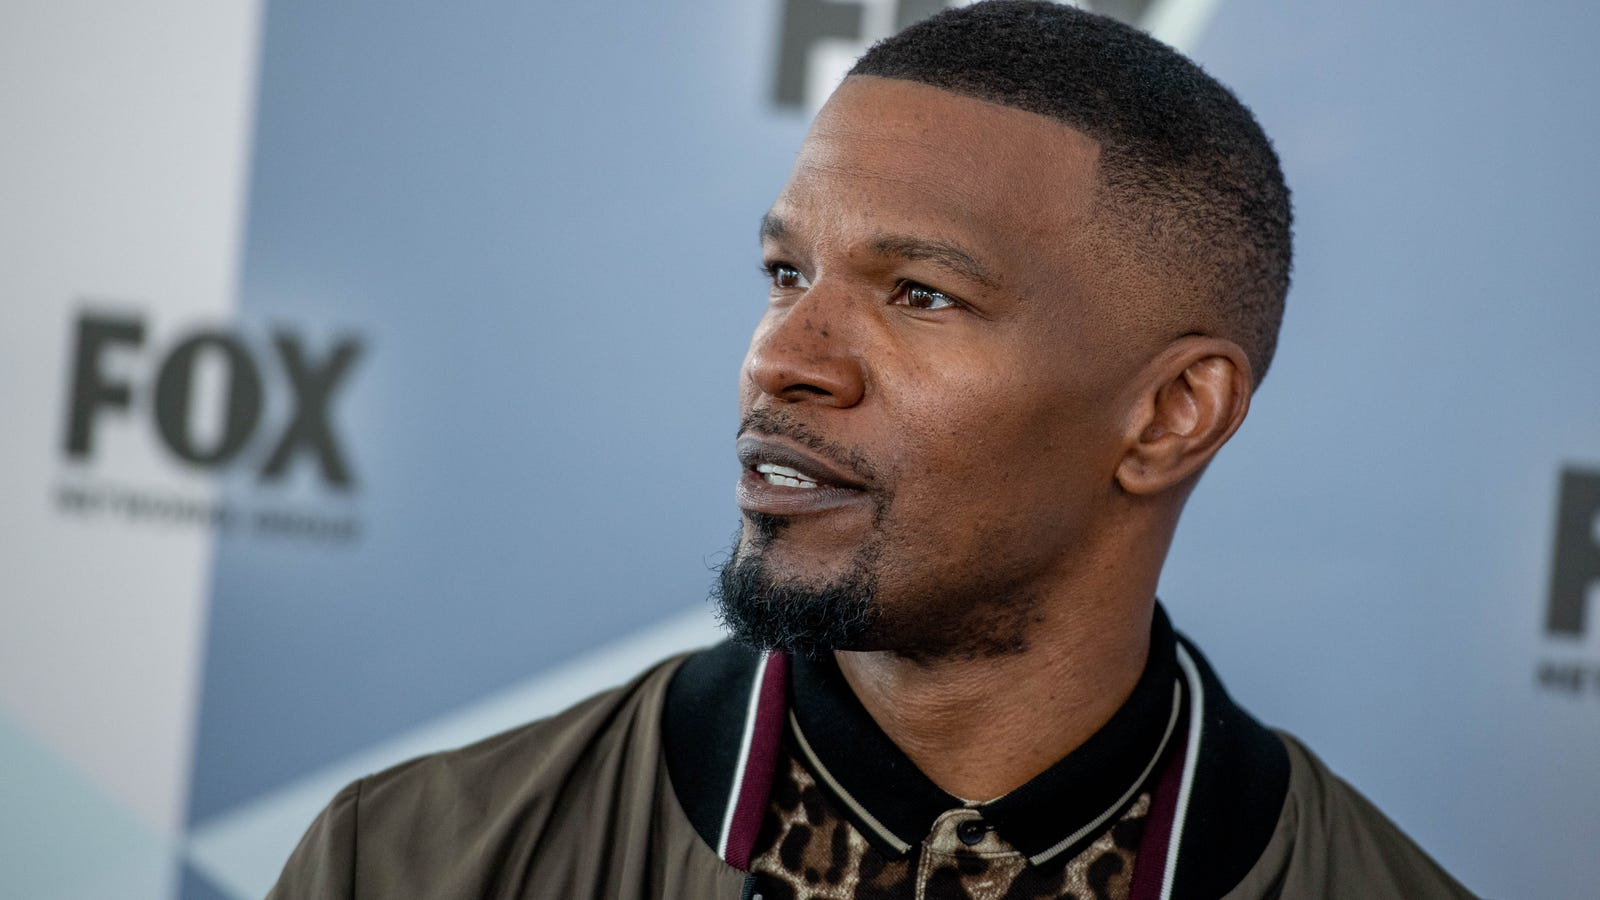 Jamie Foxx Accused of Slapping Woman with His Penis in 2002: Report